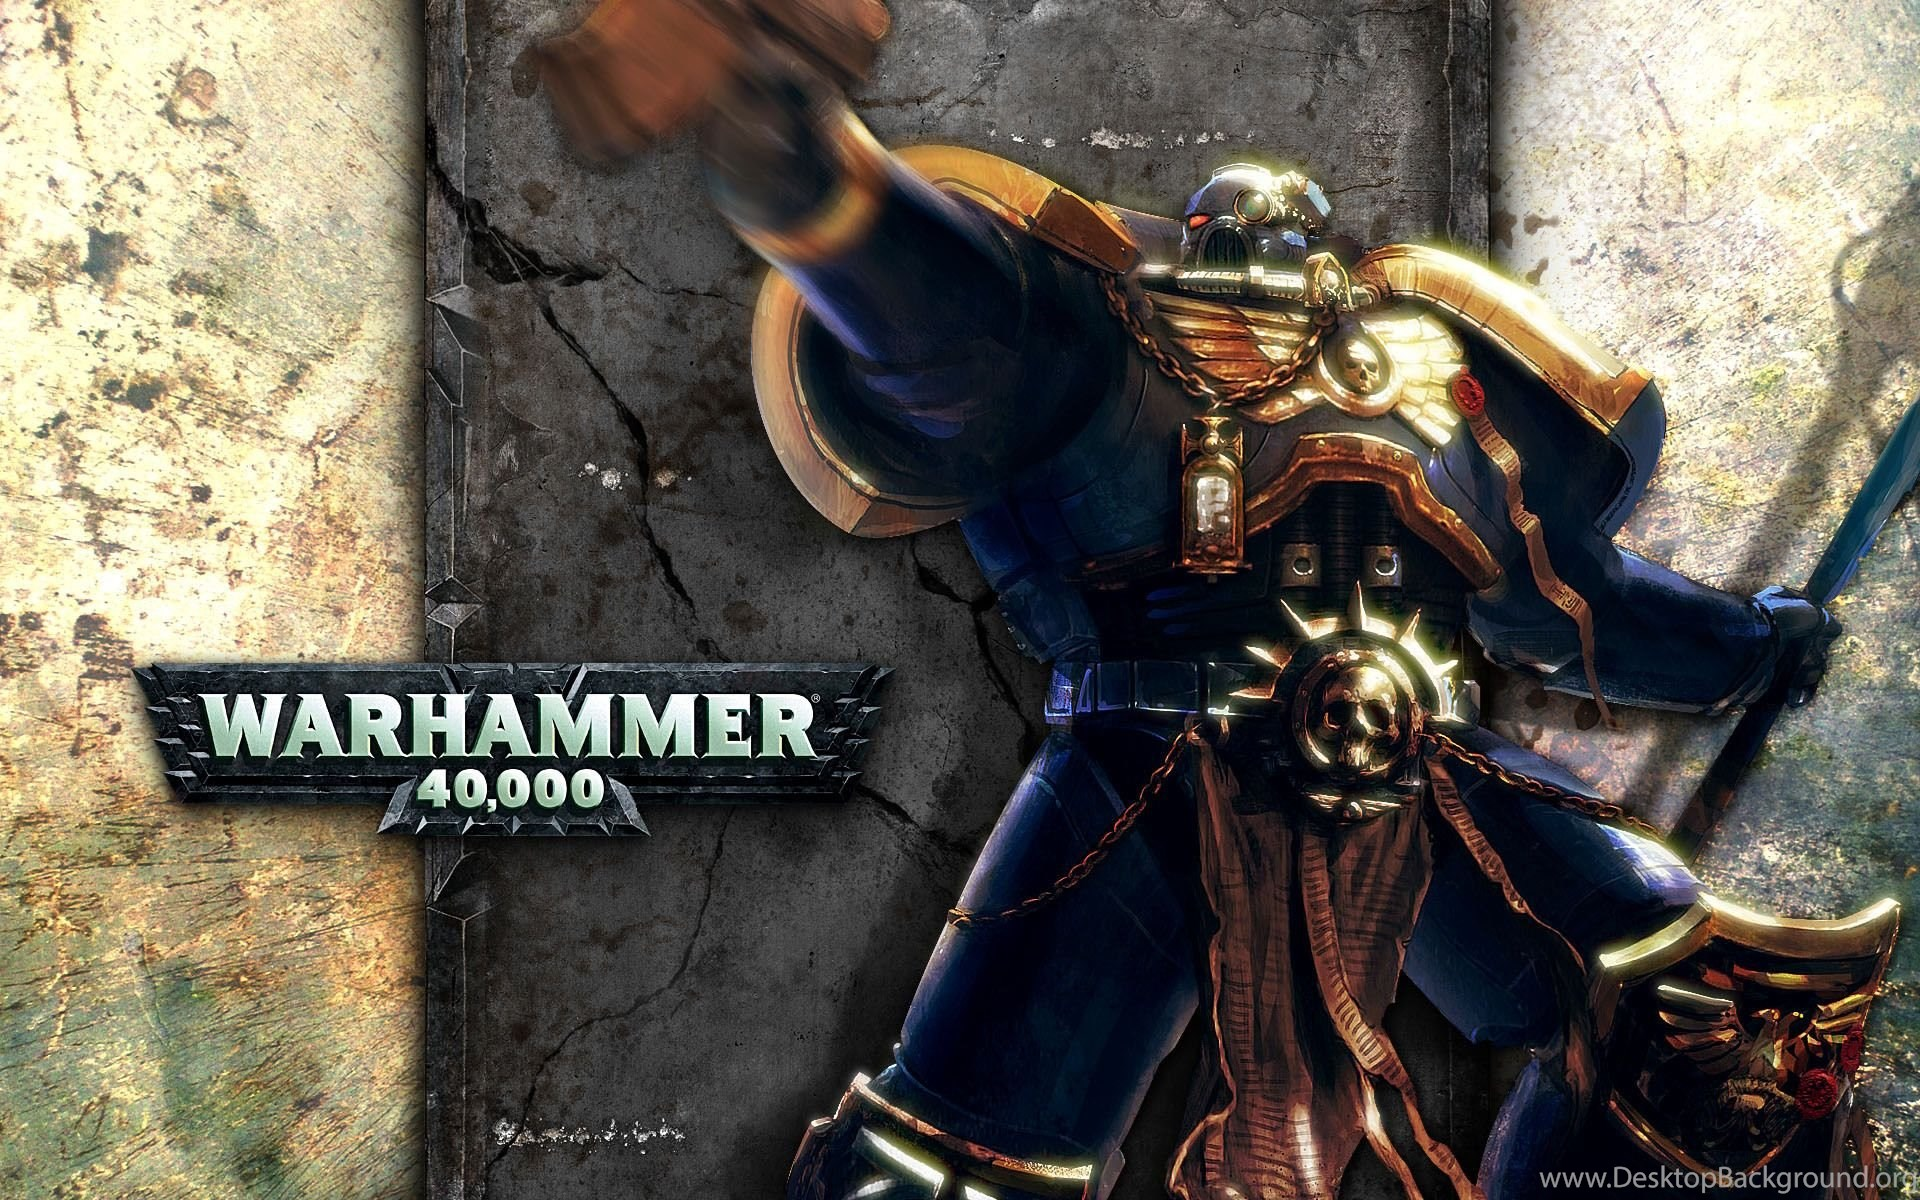 warhammer 40k ultramarines space marine wallpapers desktop background